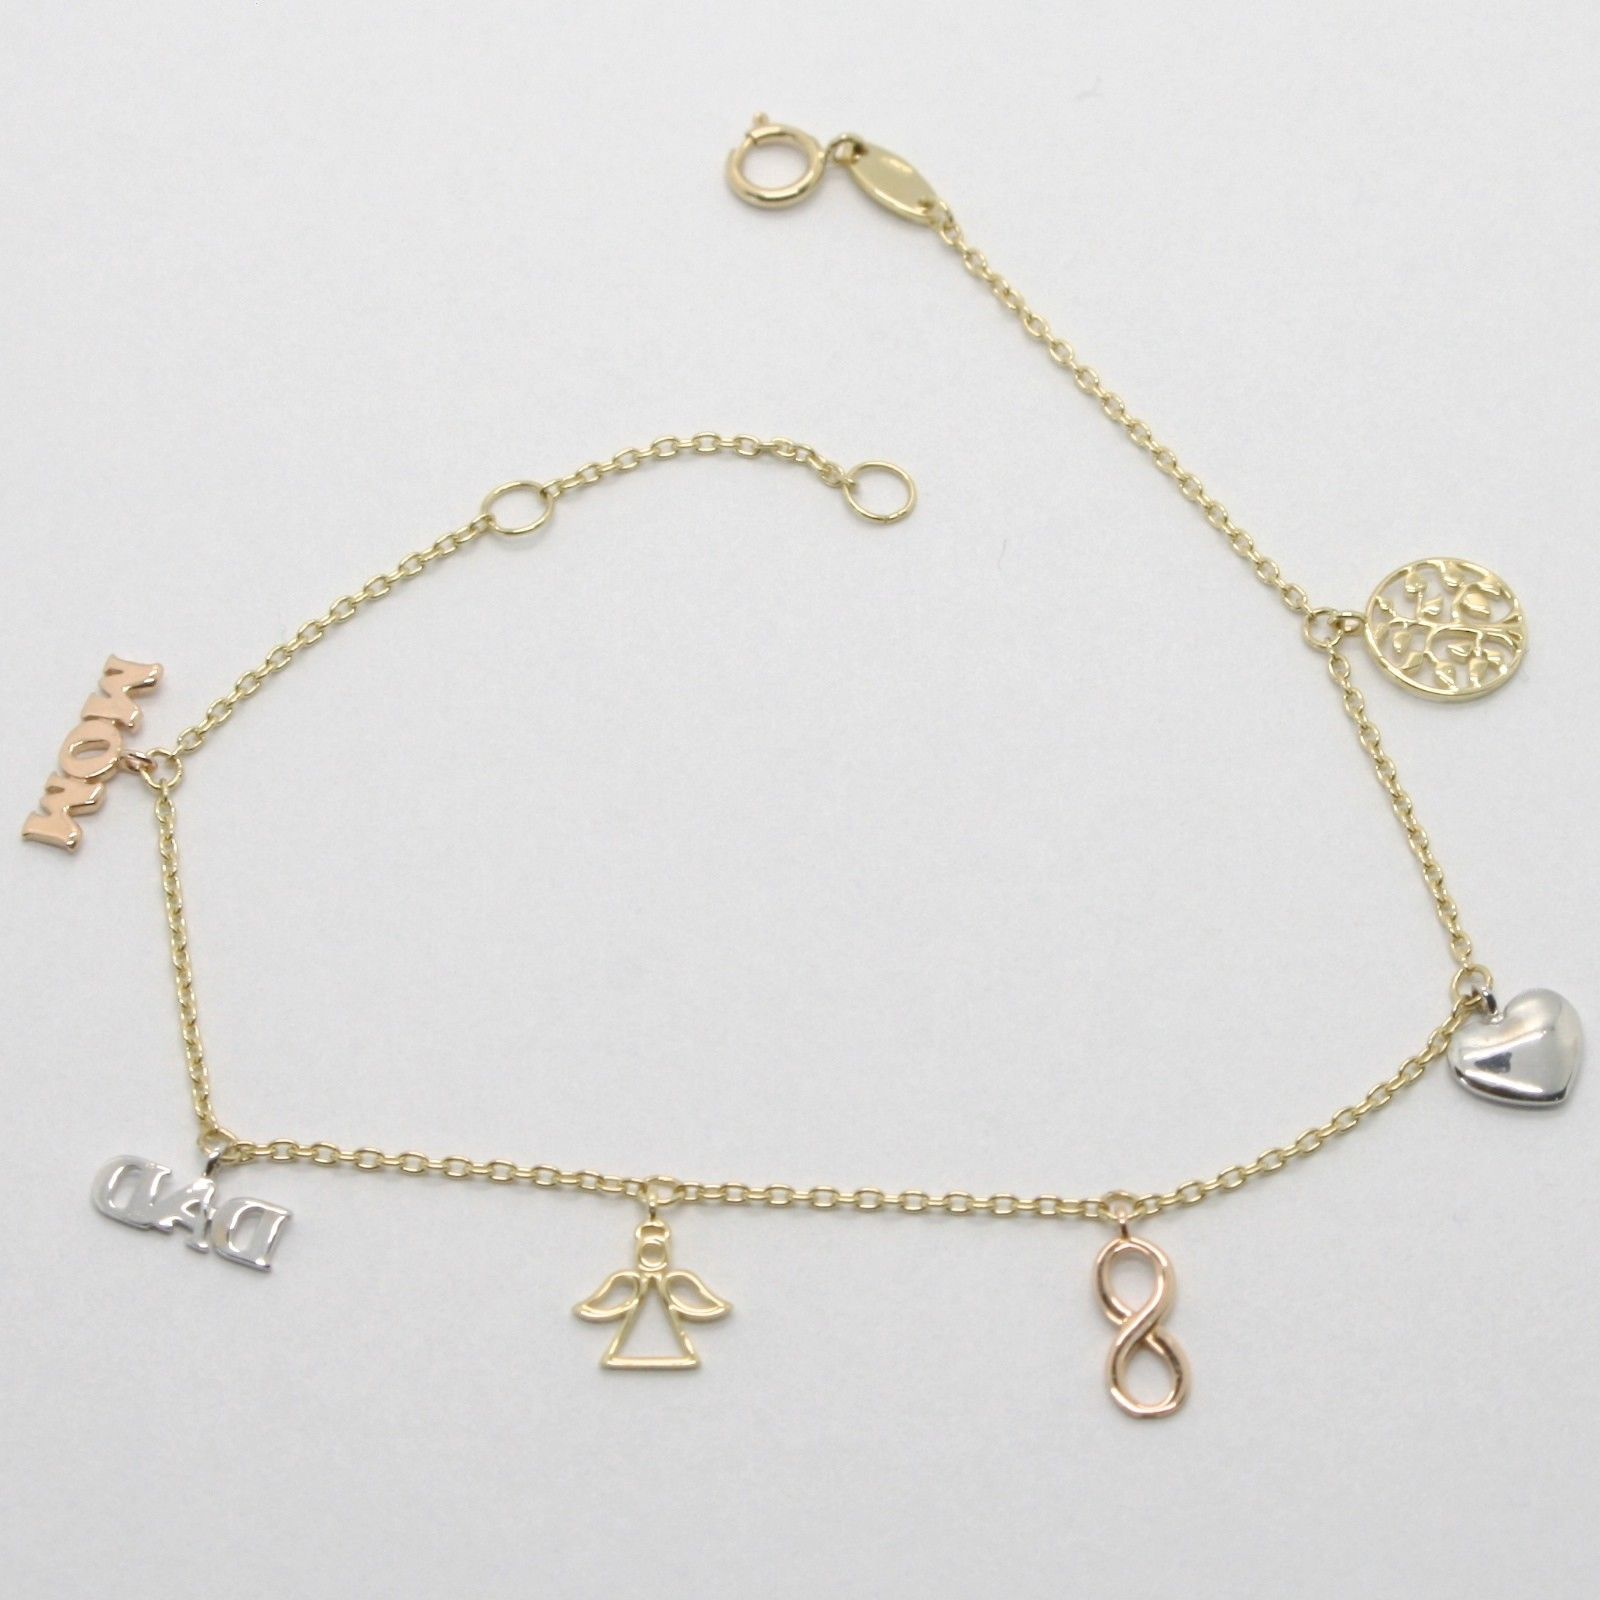 18K YELLOW ROSE GOLD FAMILY BRACELET, MOM, DAD, ANGEL, INFINITY, HEART LIFE TREE